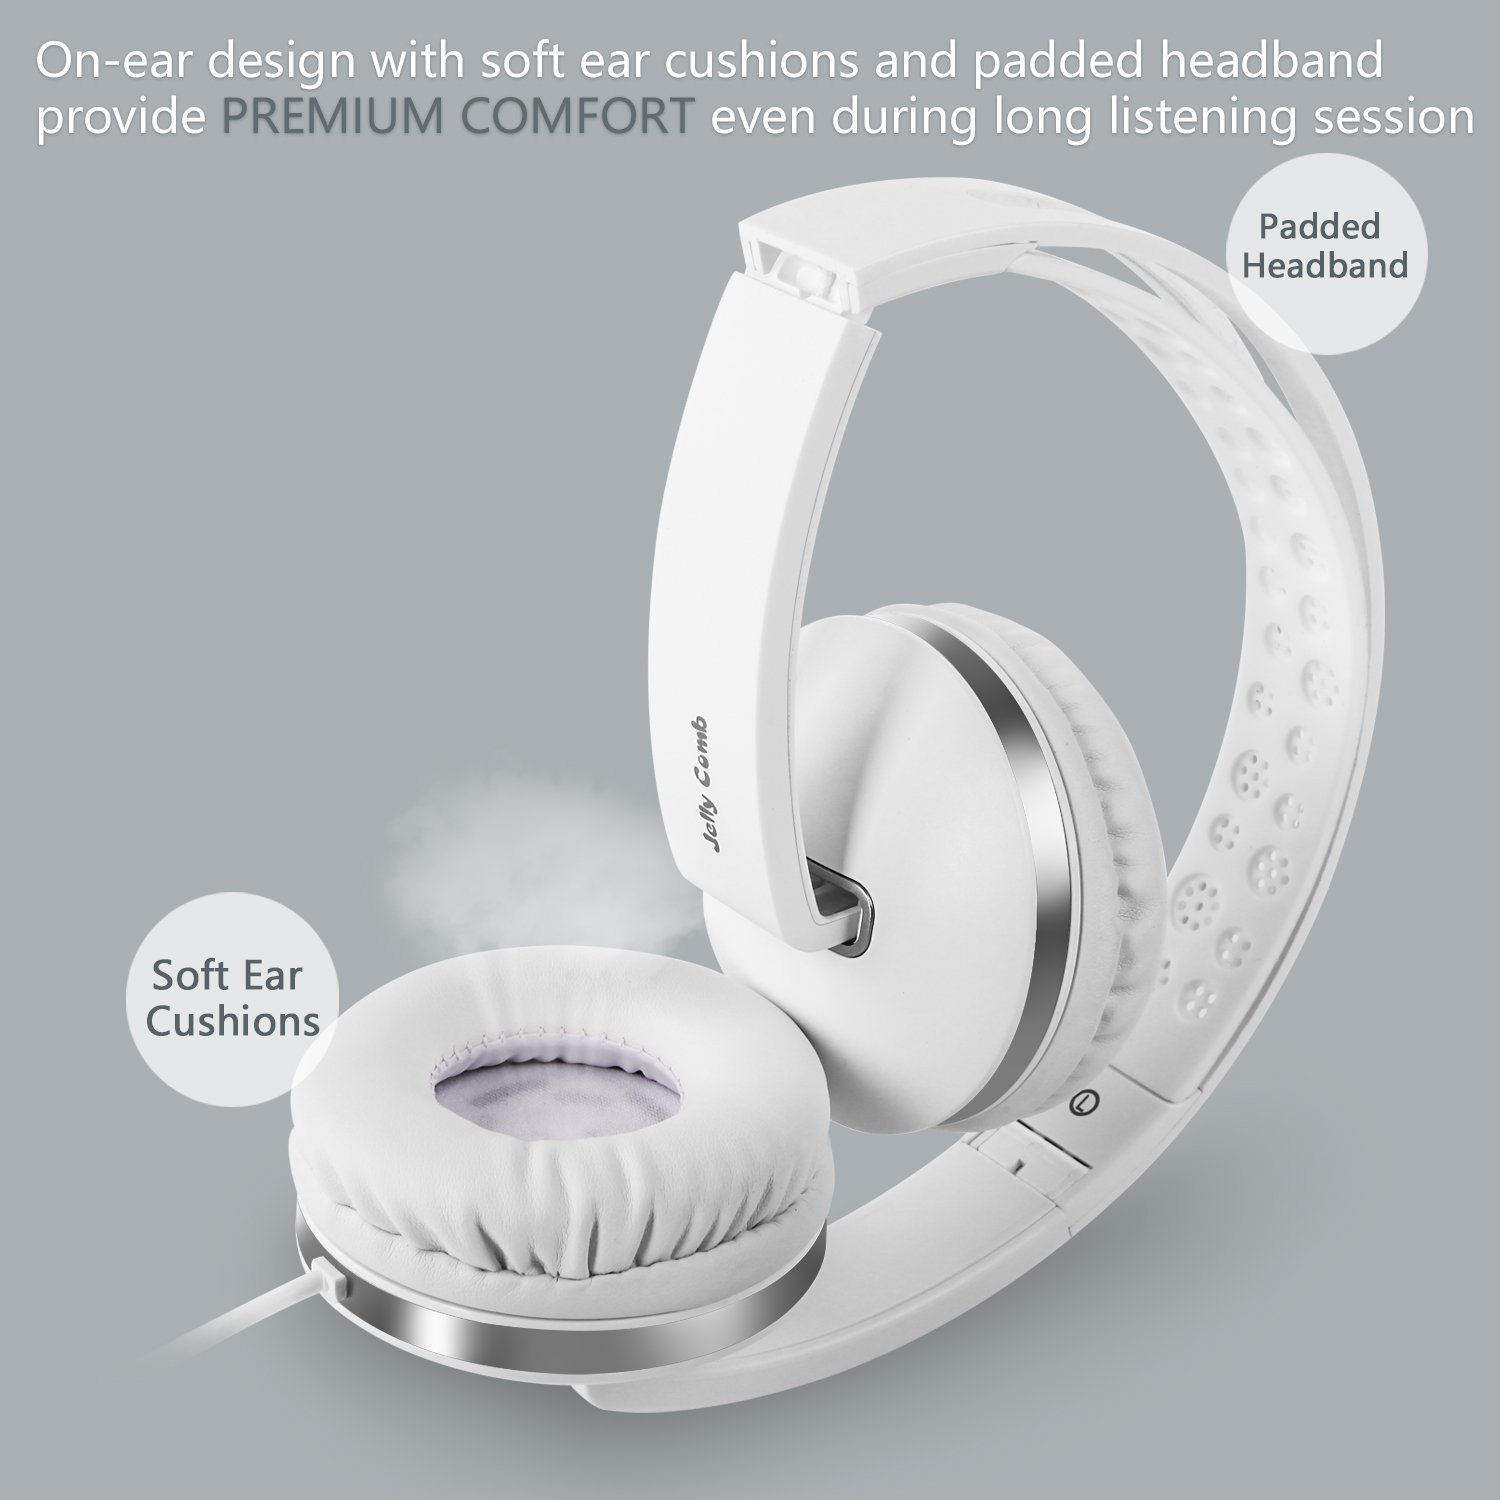 On Ear Headphones with Mic, Jelly Comb Foldable Corded Headphones Wired Headsets with Microphone, Volume Control for Cell Phone, Tablet, PC, Laptop, MP3/4, Video Game (White) by Jelly Comb (Image #4)